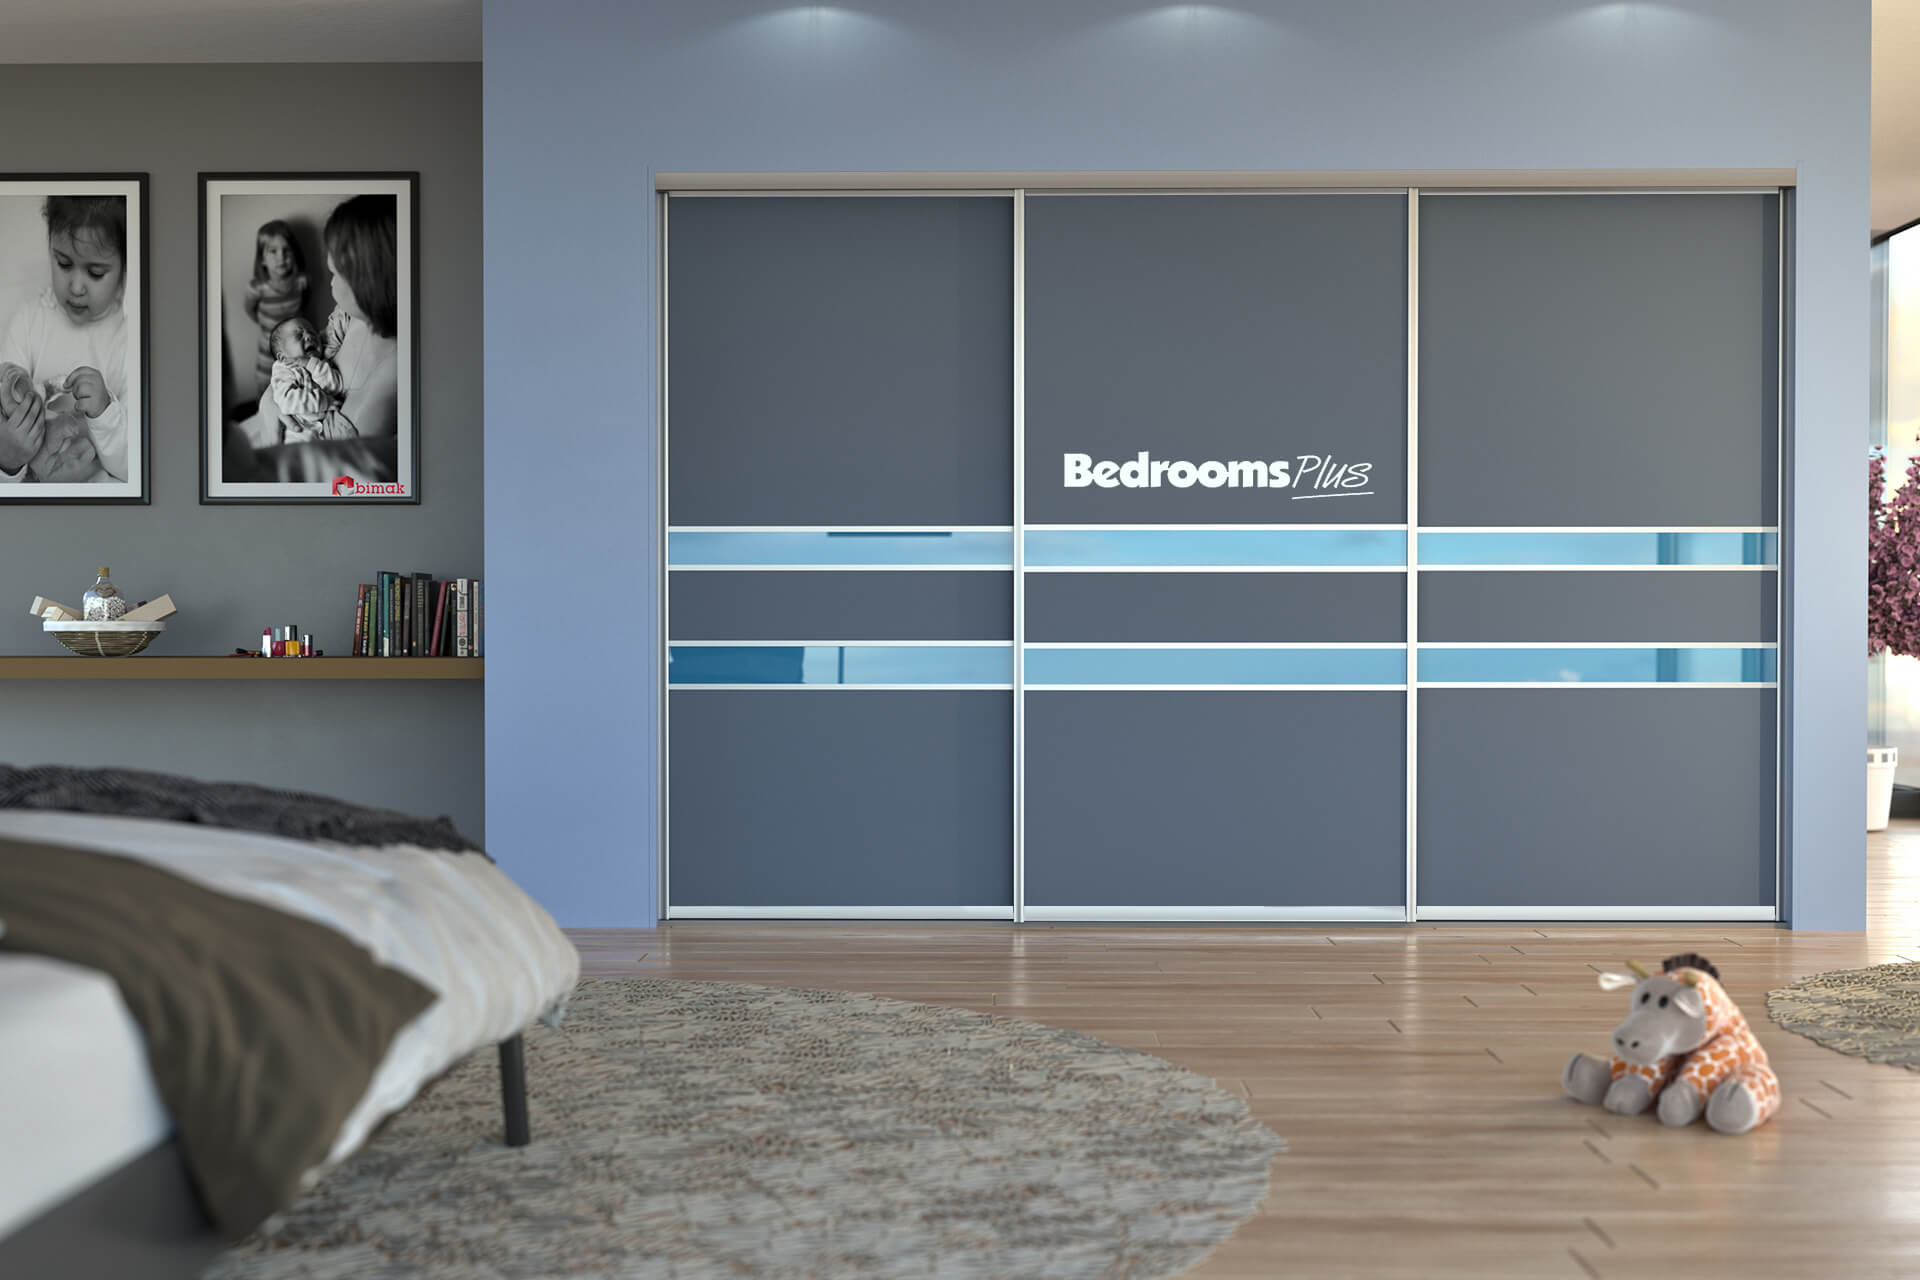 Bedrooms Plus company